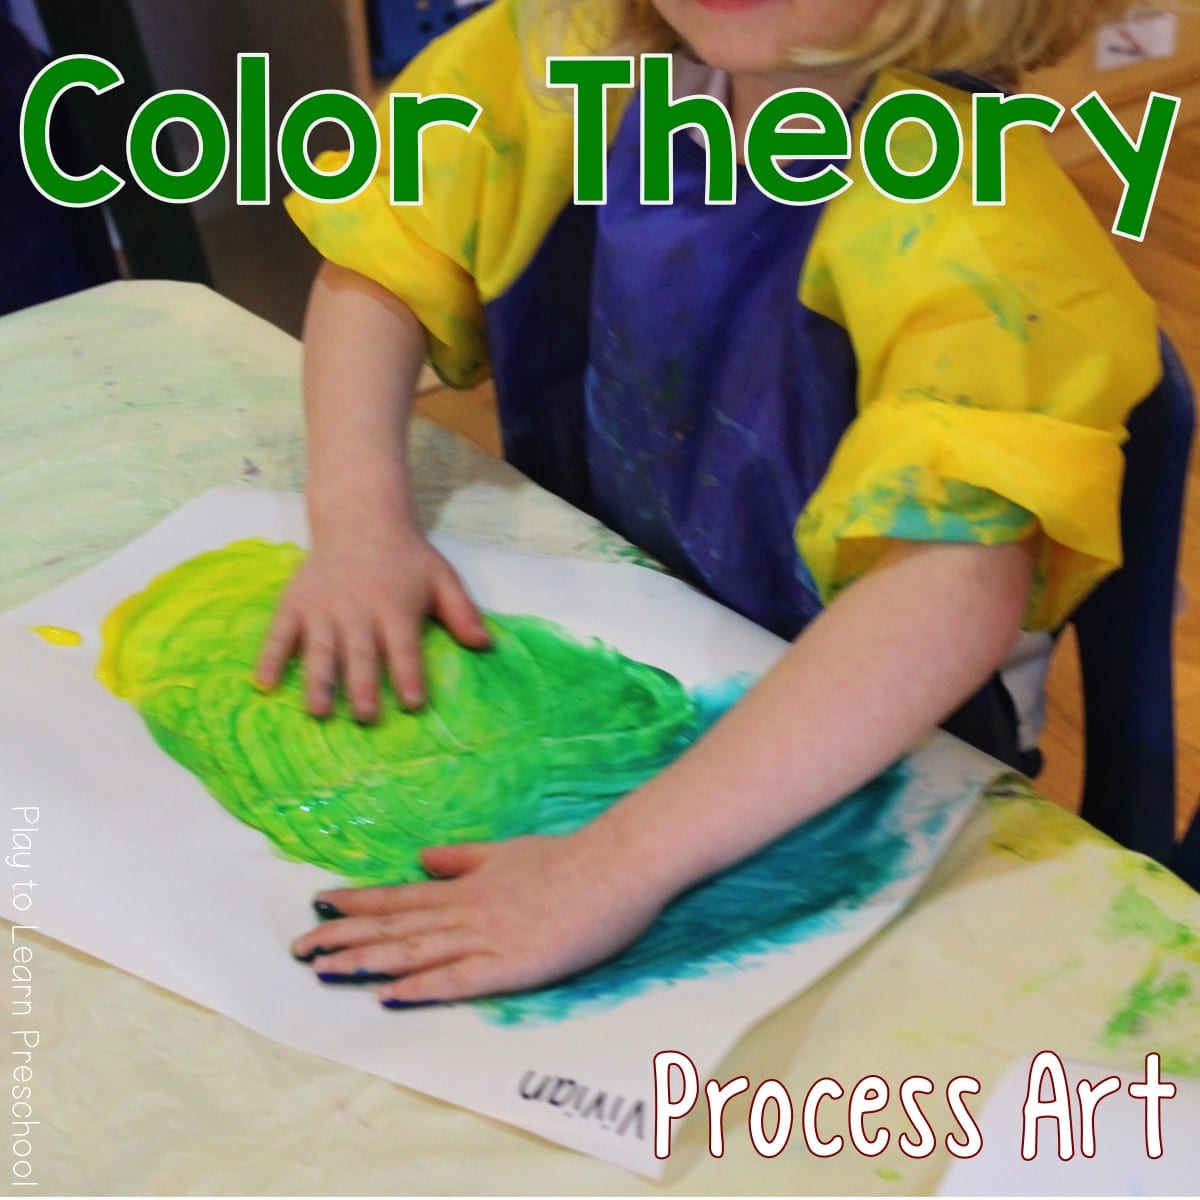 Explore Color Theory with Paint Preschool Art